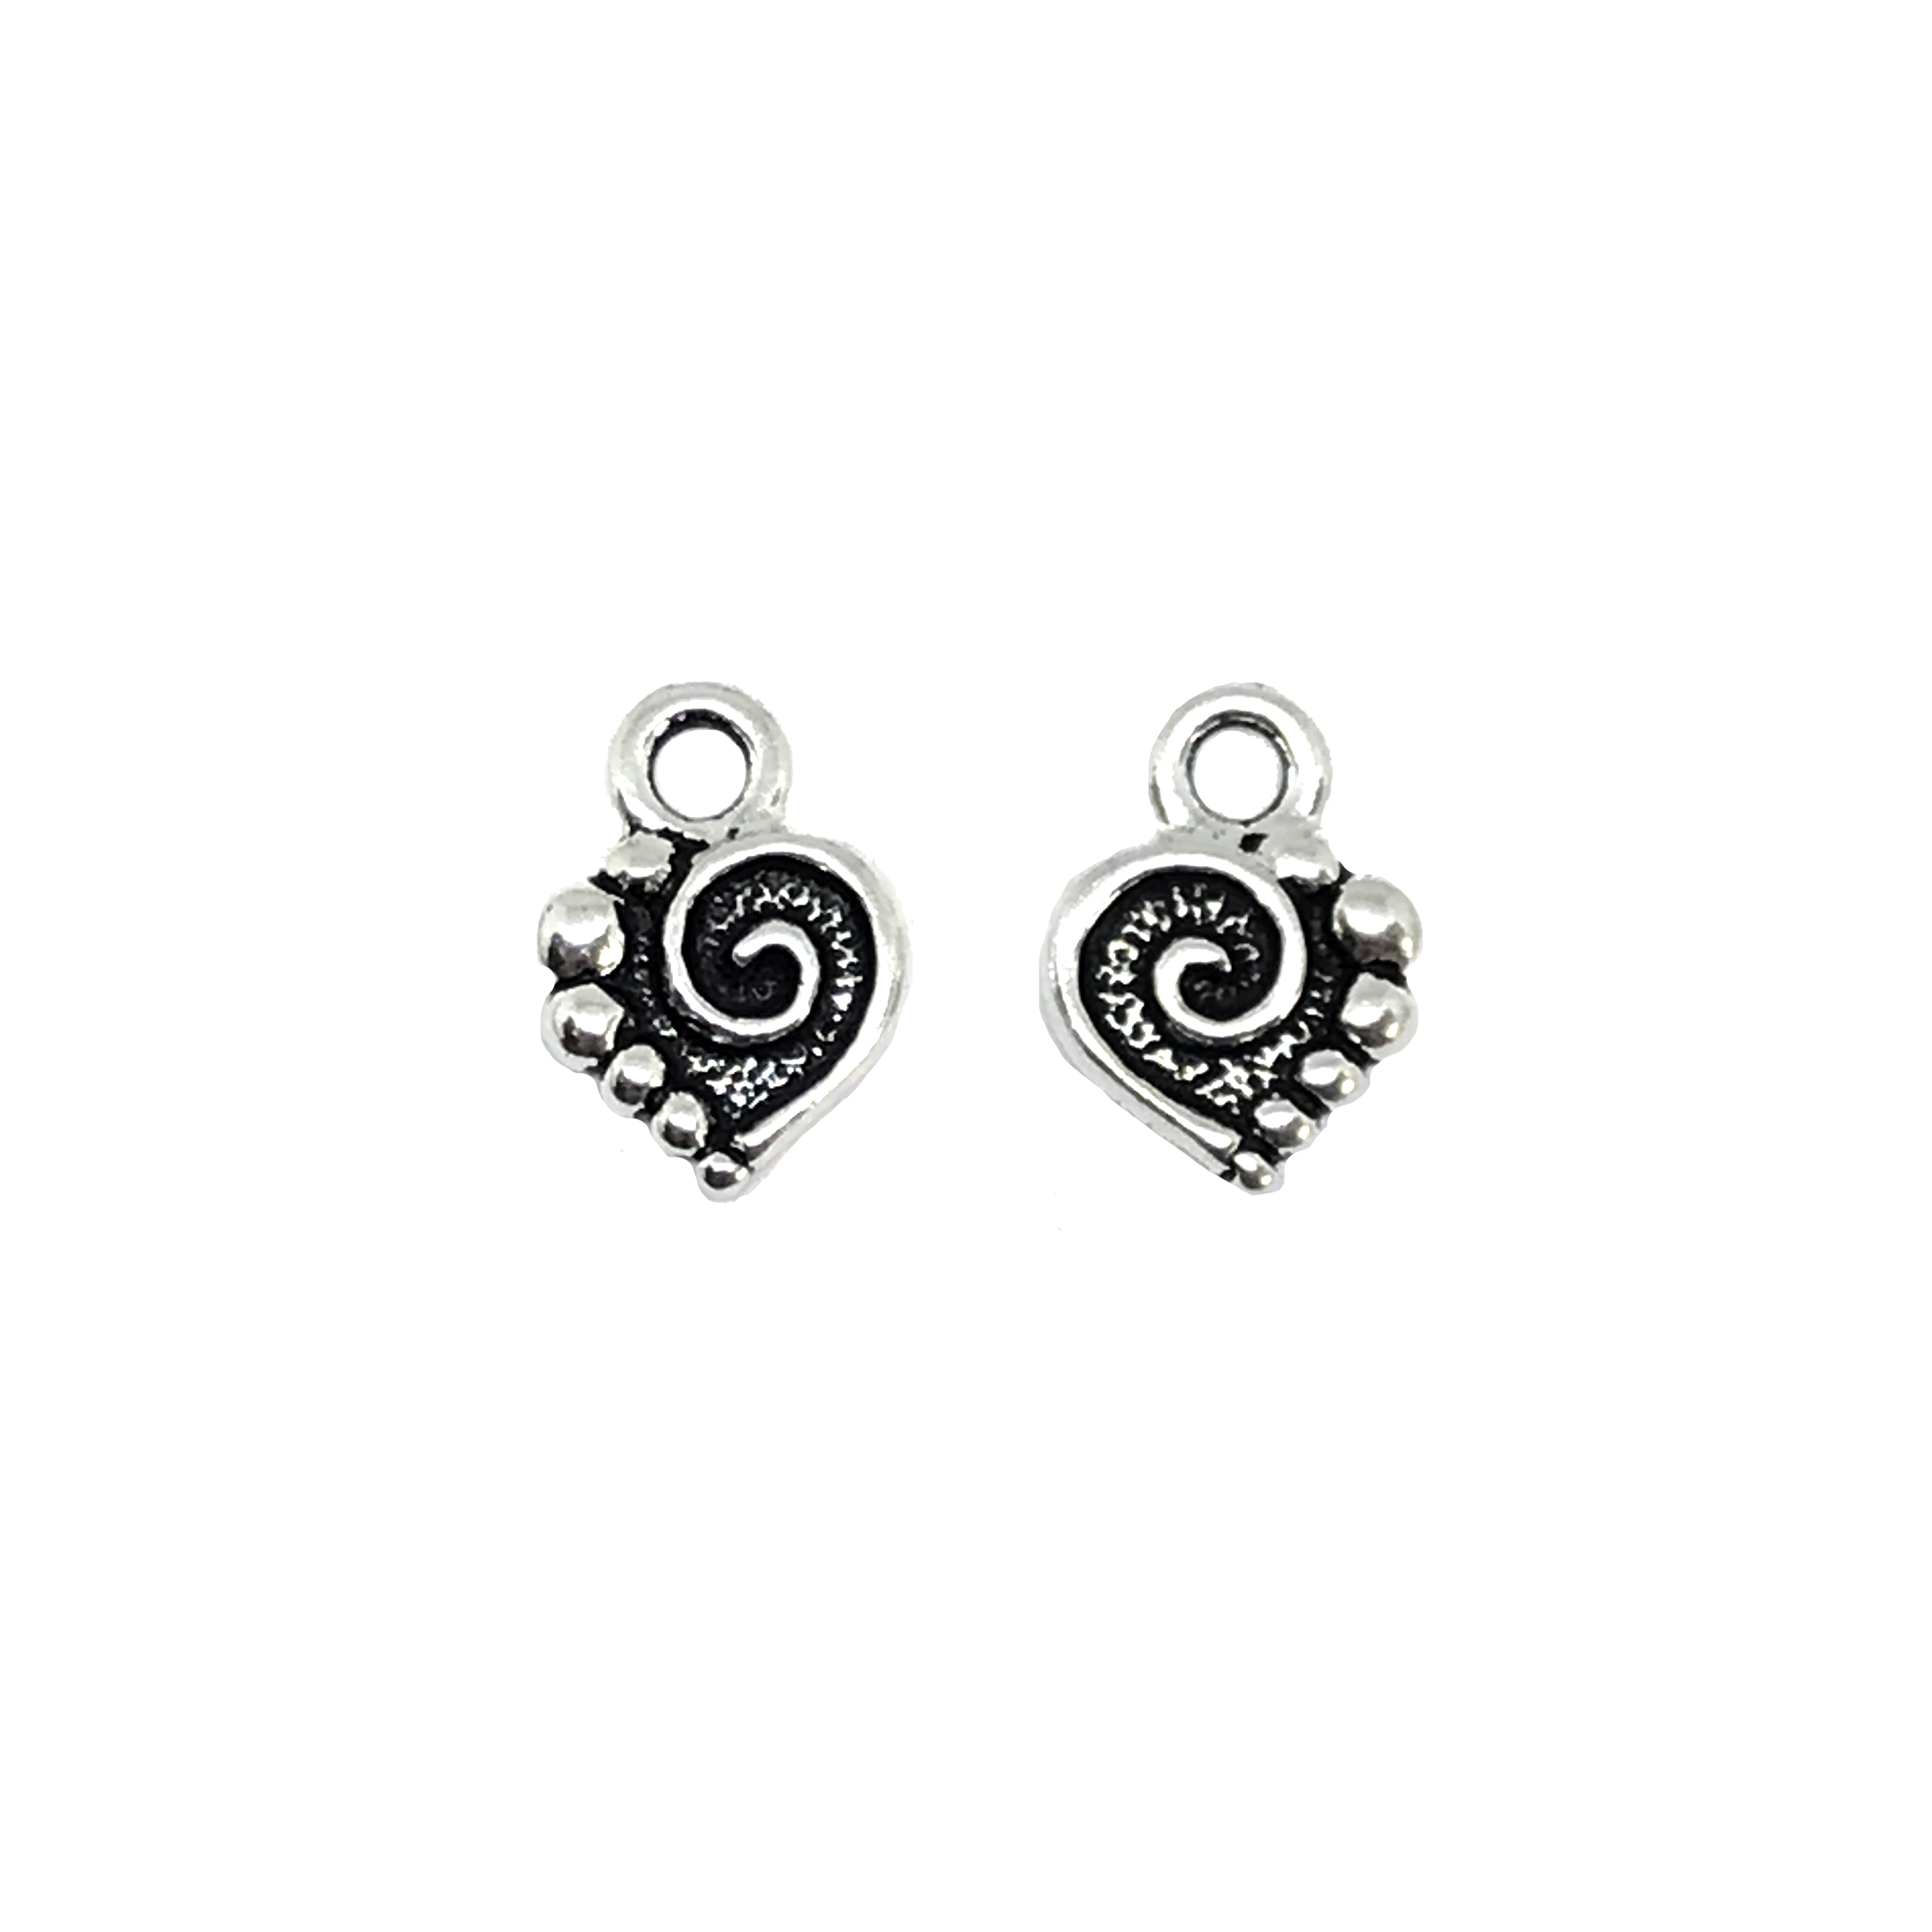 Spiral Heart Charm, Antique Silver, Ear Drop, 01171, heart charm, black antiquing, heart jewelry,  jewelry making supplies, vintage jewelry supplies, 10x13mm, charms, earrings